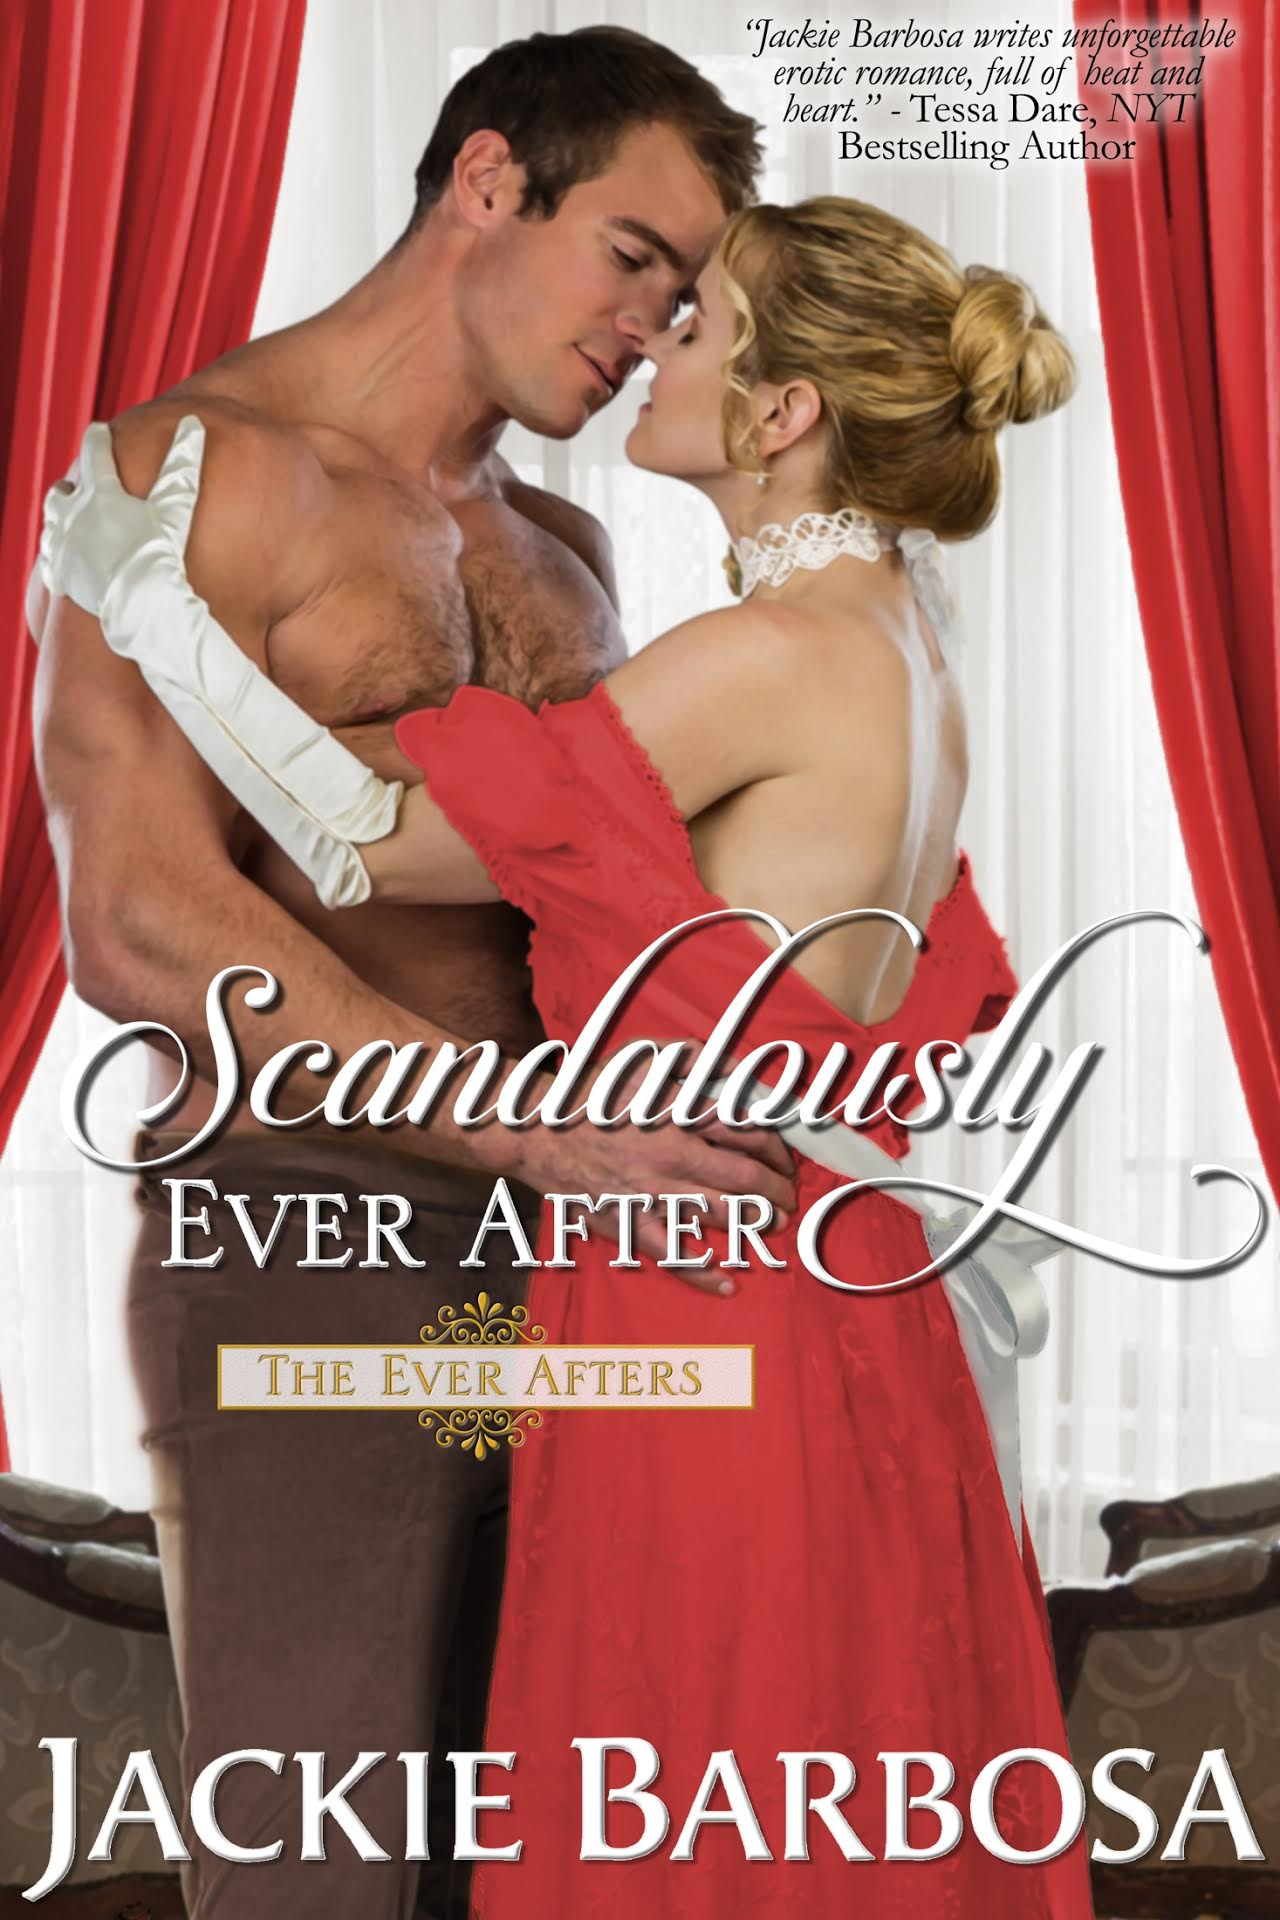 Scandalously Ever After by Jackie Barbosa